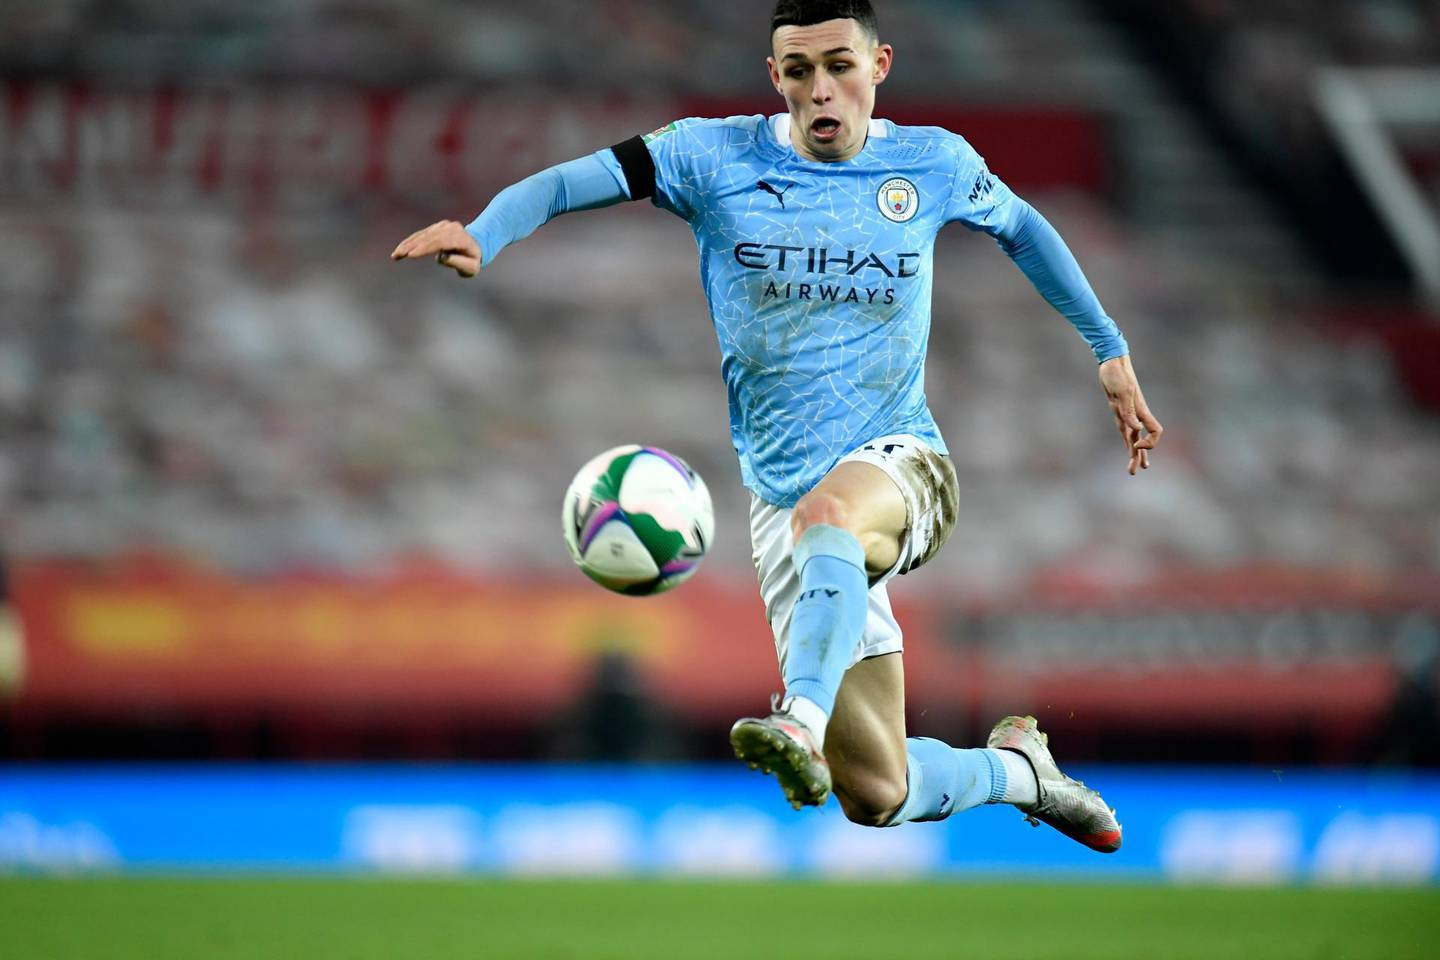 Manchester City's Phil Foden controls the ball during the English League Cup semifinal soccer match between Manchester United and Manchester City at Old Trafford in Manchester, England, Wednesday, Jan. 6, 2021. (Peter Powell/Pool via AP)